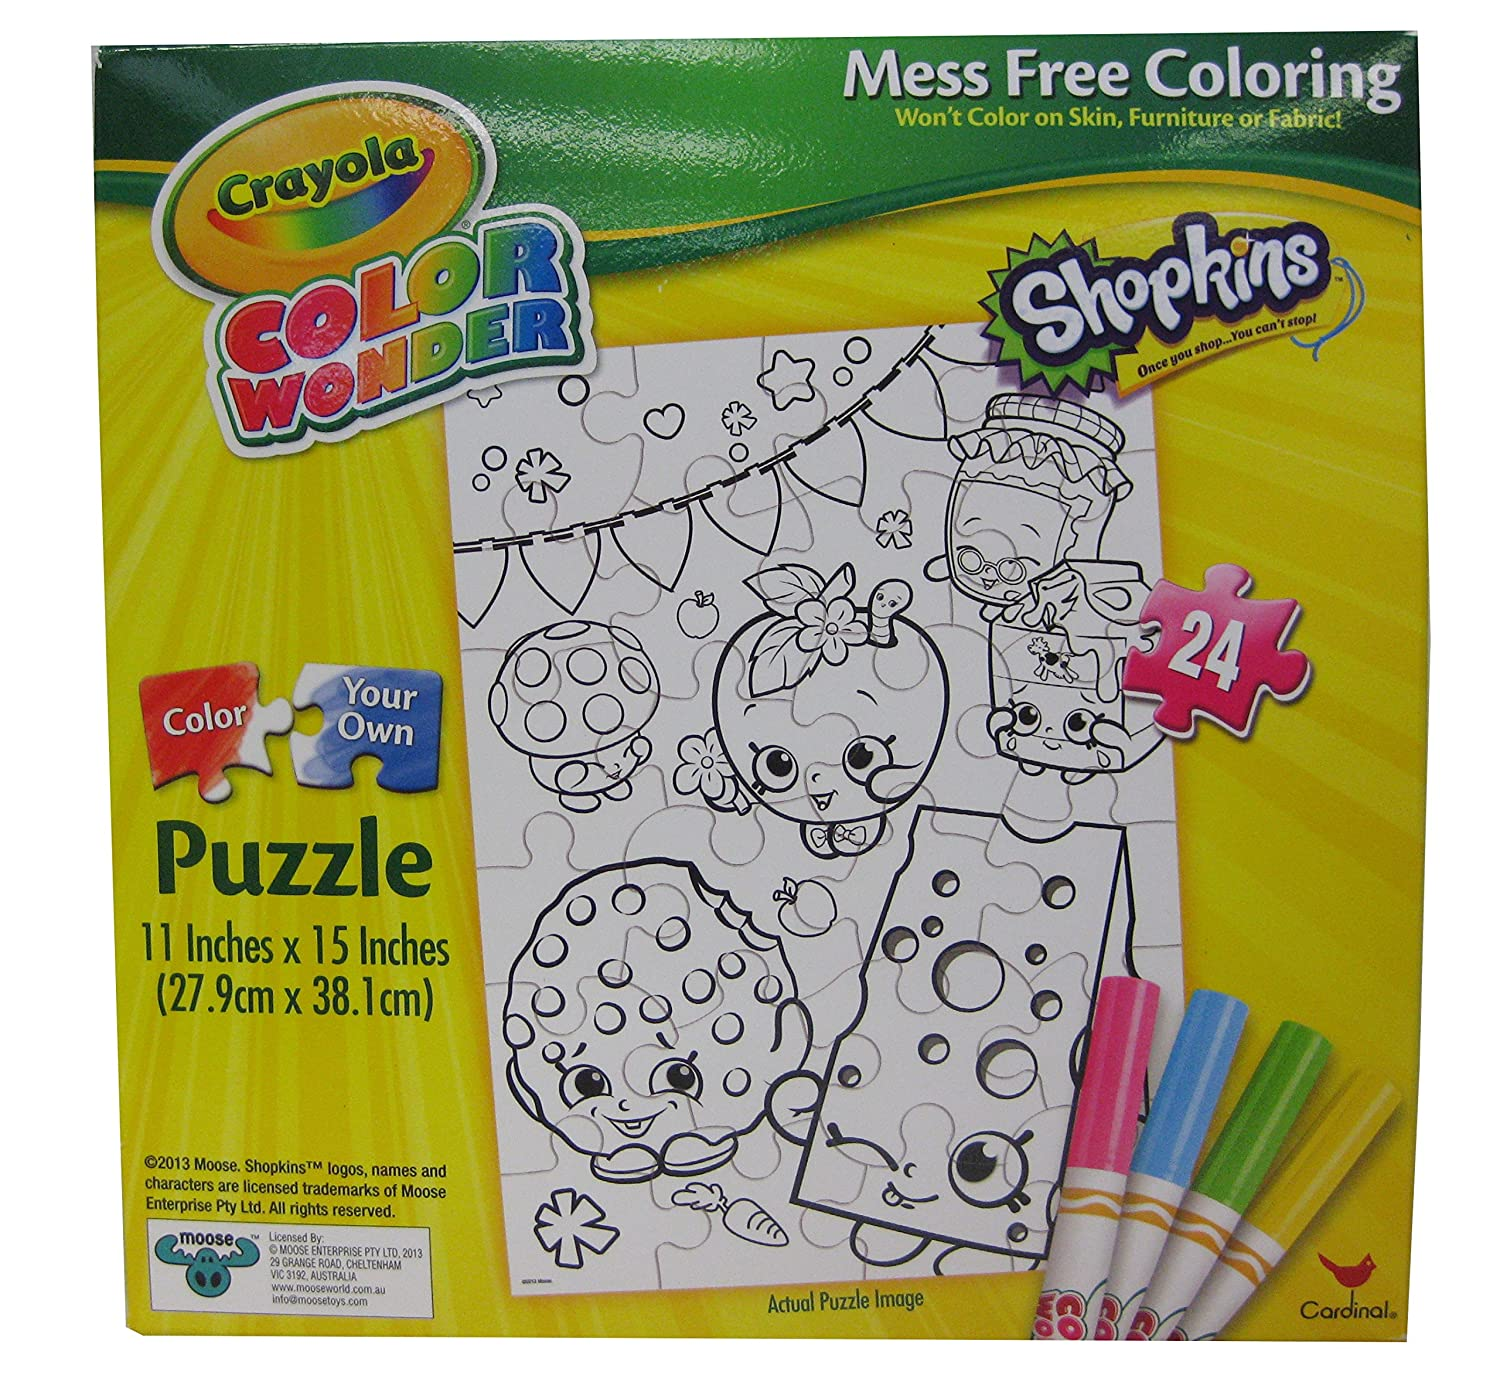 Where to buy shopkins coloring book - Amazon Com Crayola Color Wonder Shopkins Puzzle 24 Pcs With 4 Color Makers Puzzle Designs May Vary Toys Games